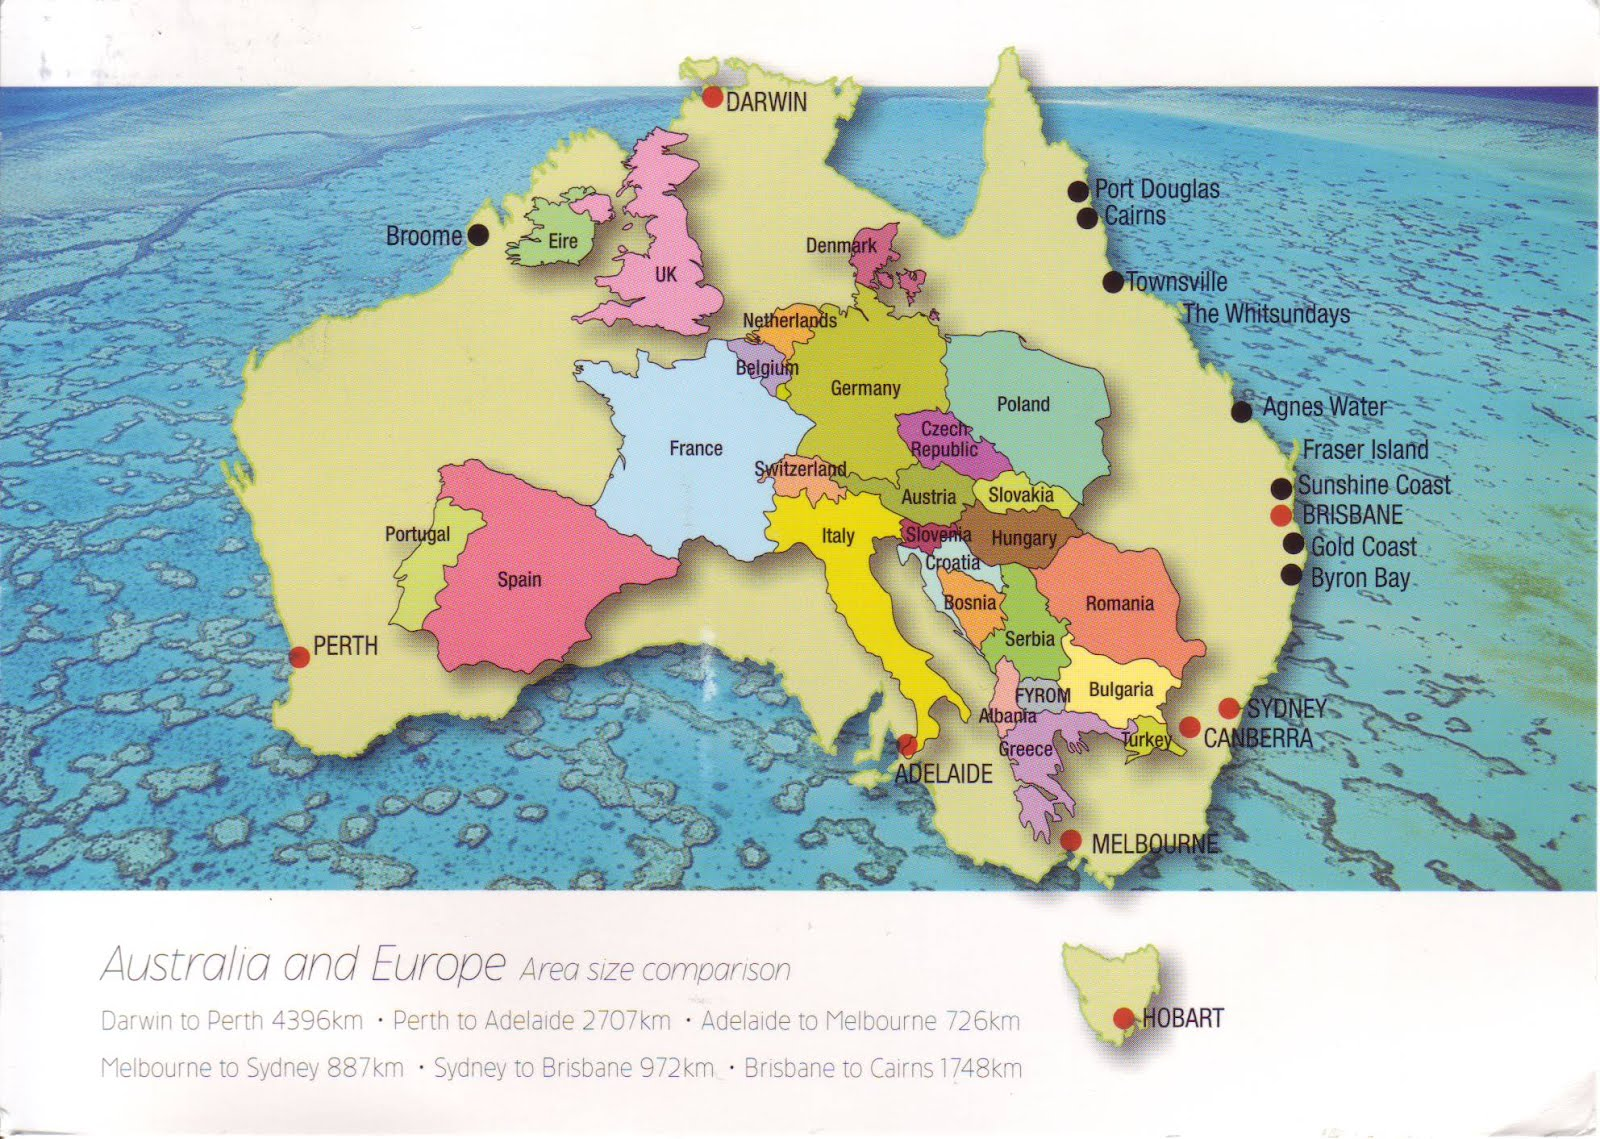 The world in postcards sabines blog australia map beautiful new mapcard with interesting facts of australia sent by rod eime in a private swap somehow australia always looks small on a world map but seeing gumiabroncs Images